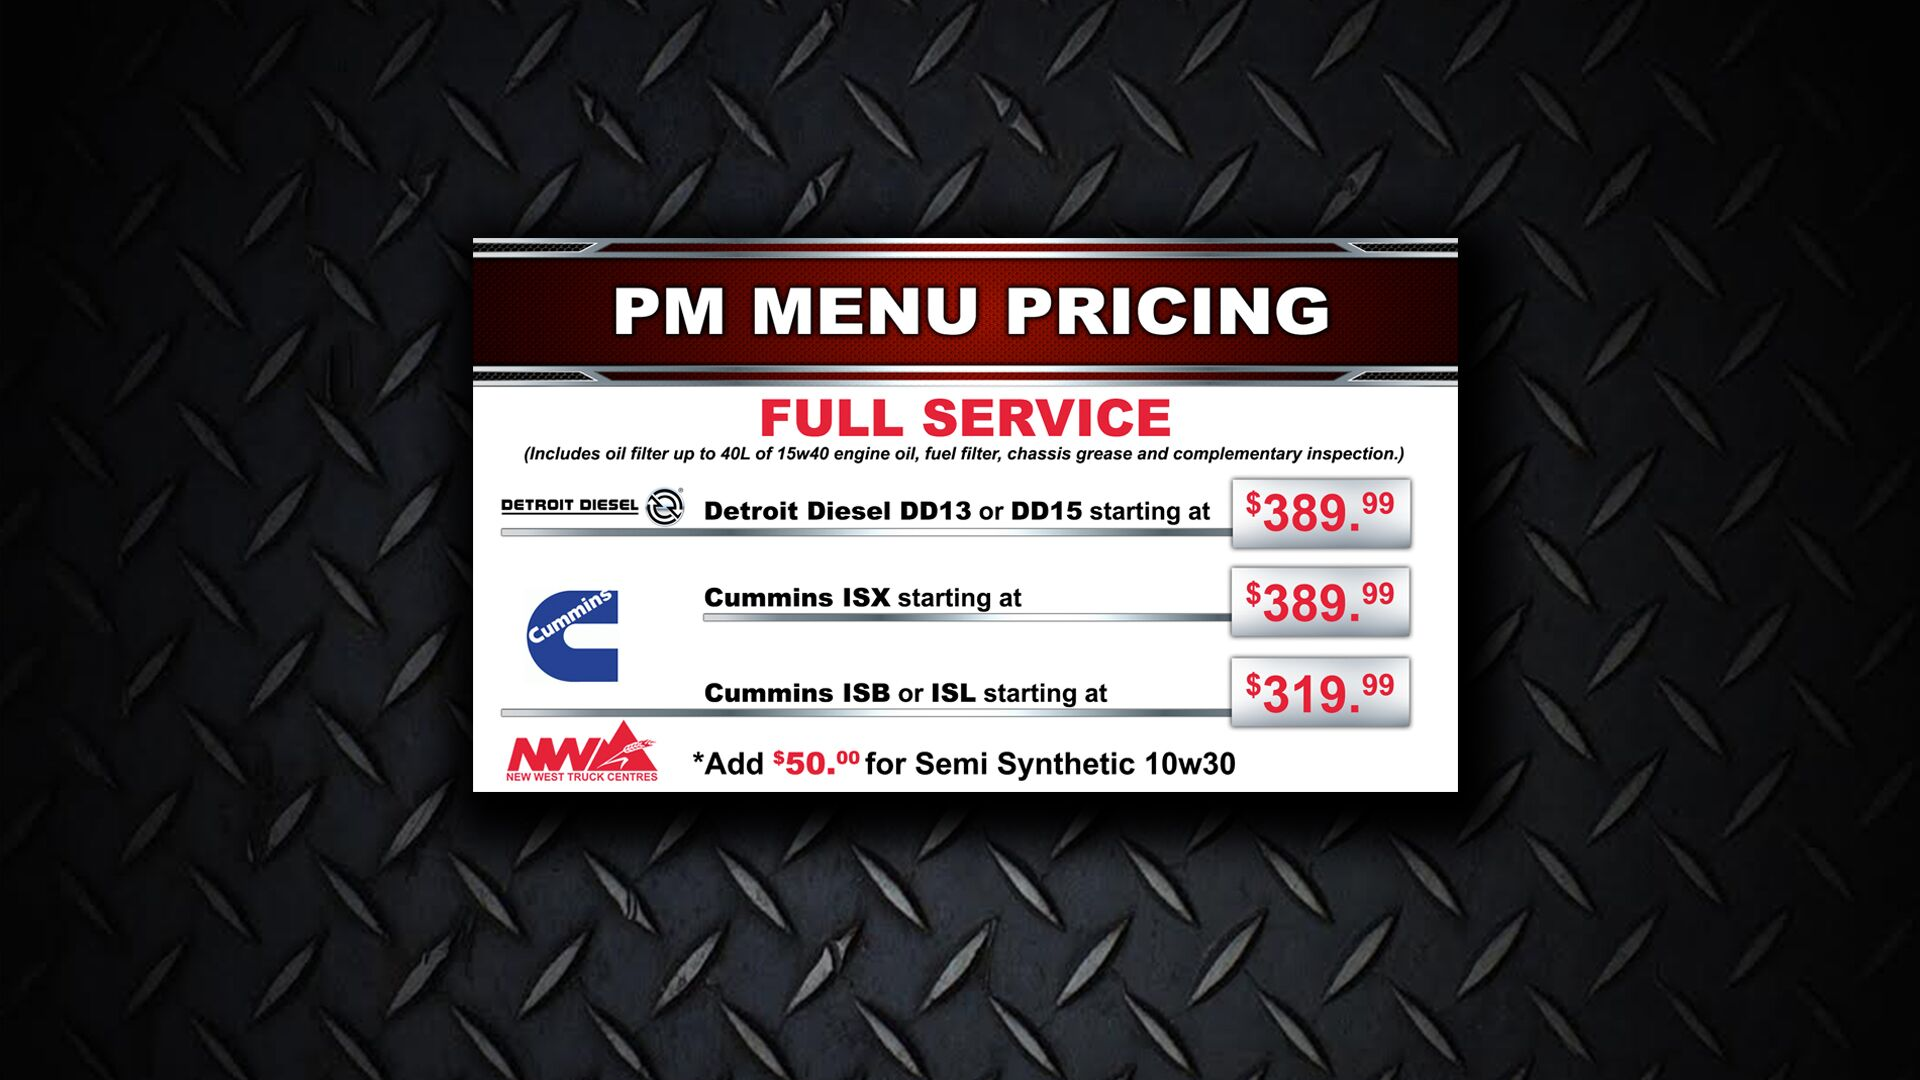 PM Pricing